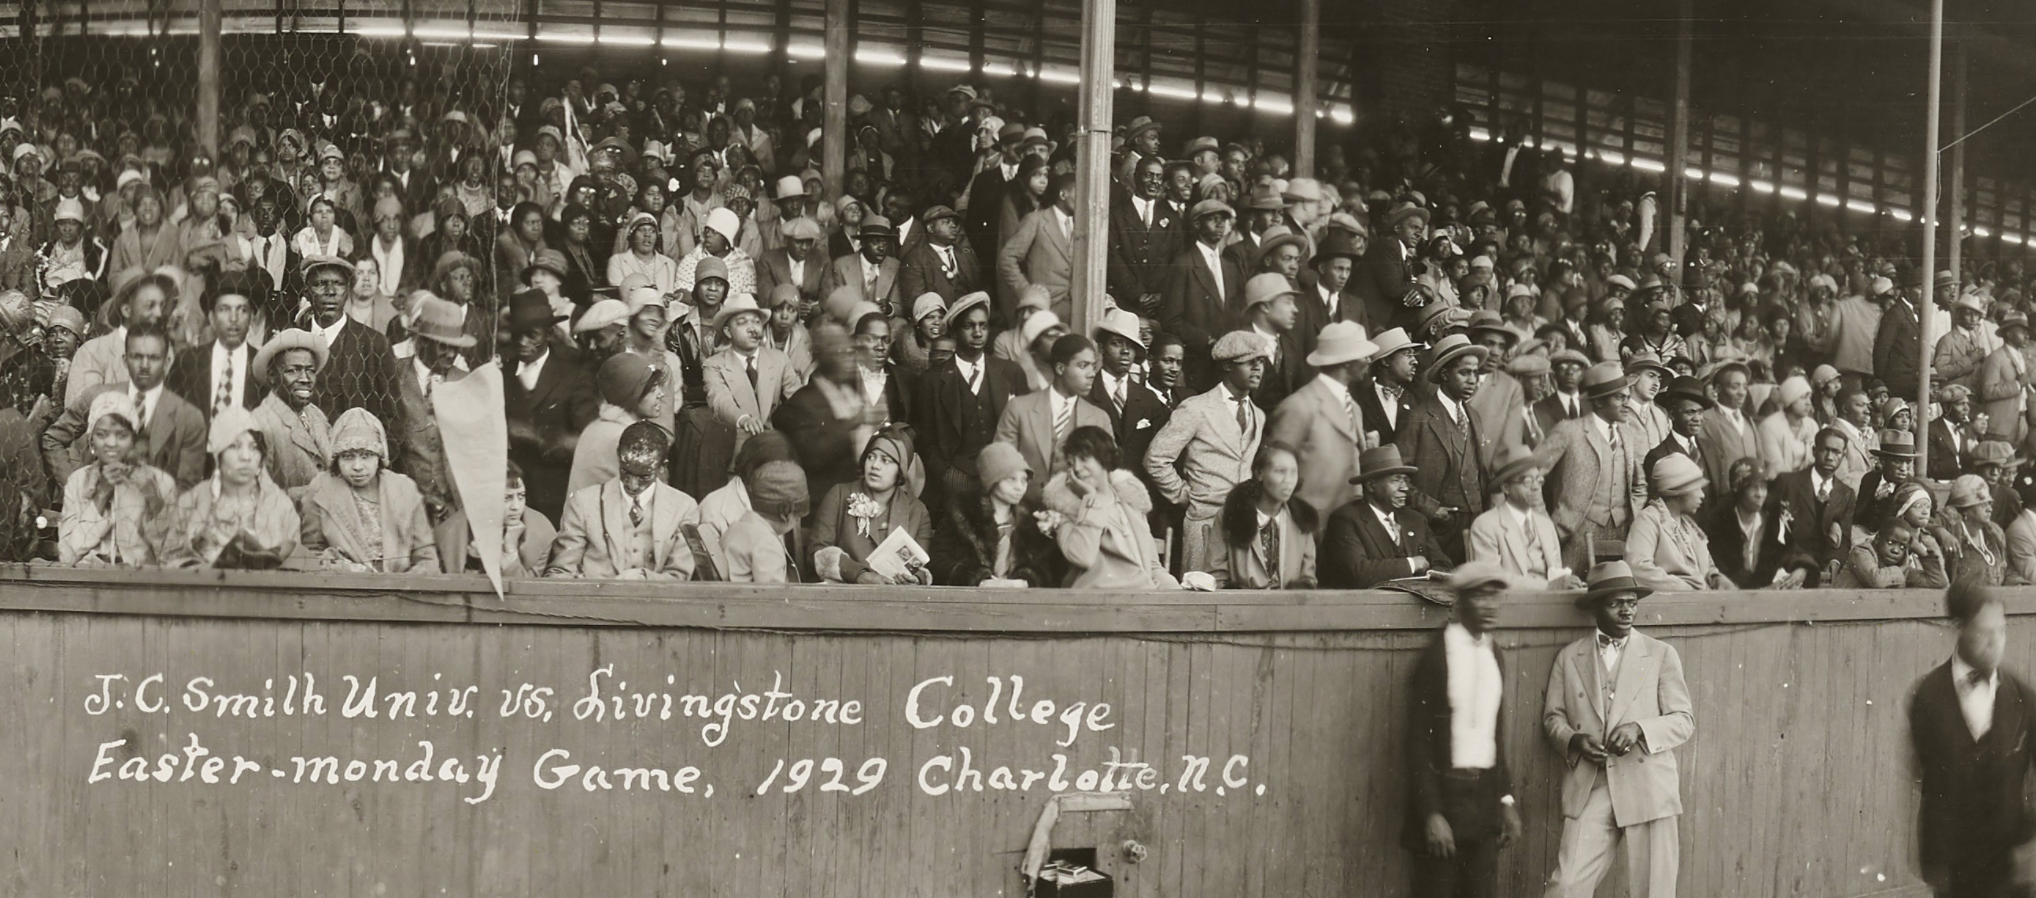 Close up of the crowd in the stands watching a baseball game.